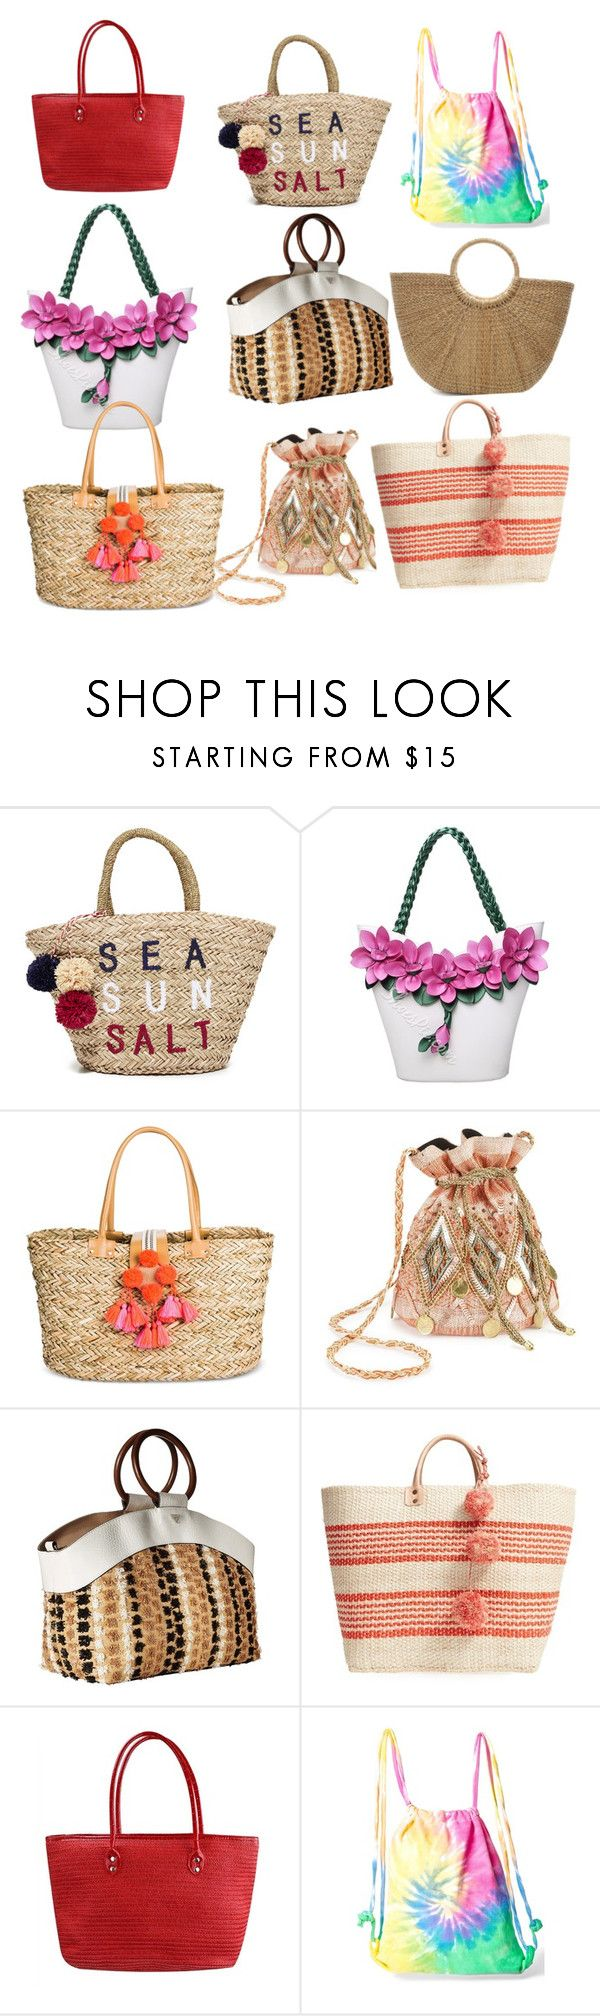 """""""Beach bags"""" by gwenblondy ❤ liked on Polyvore featuring Sundry, Merona, Miss Selfridge, Sam Edelman, Mar y Sol and Colortone"""